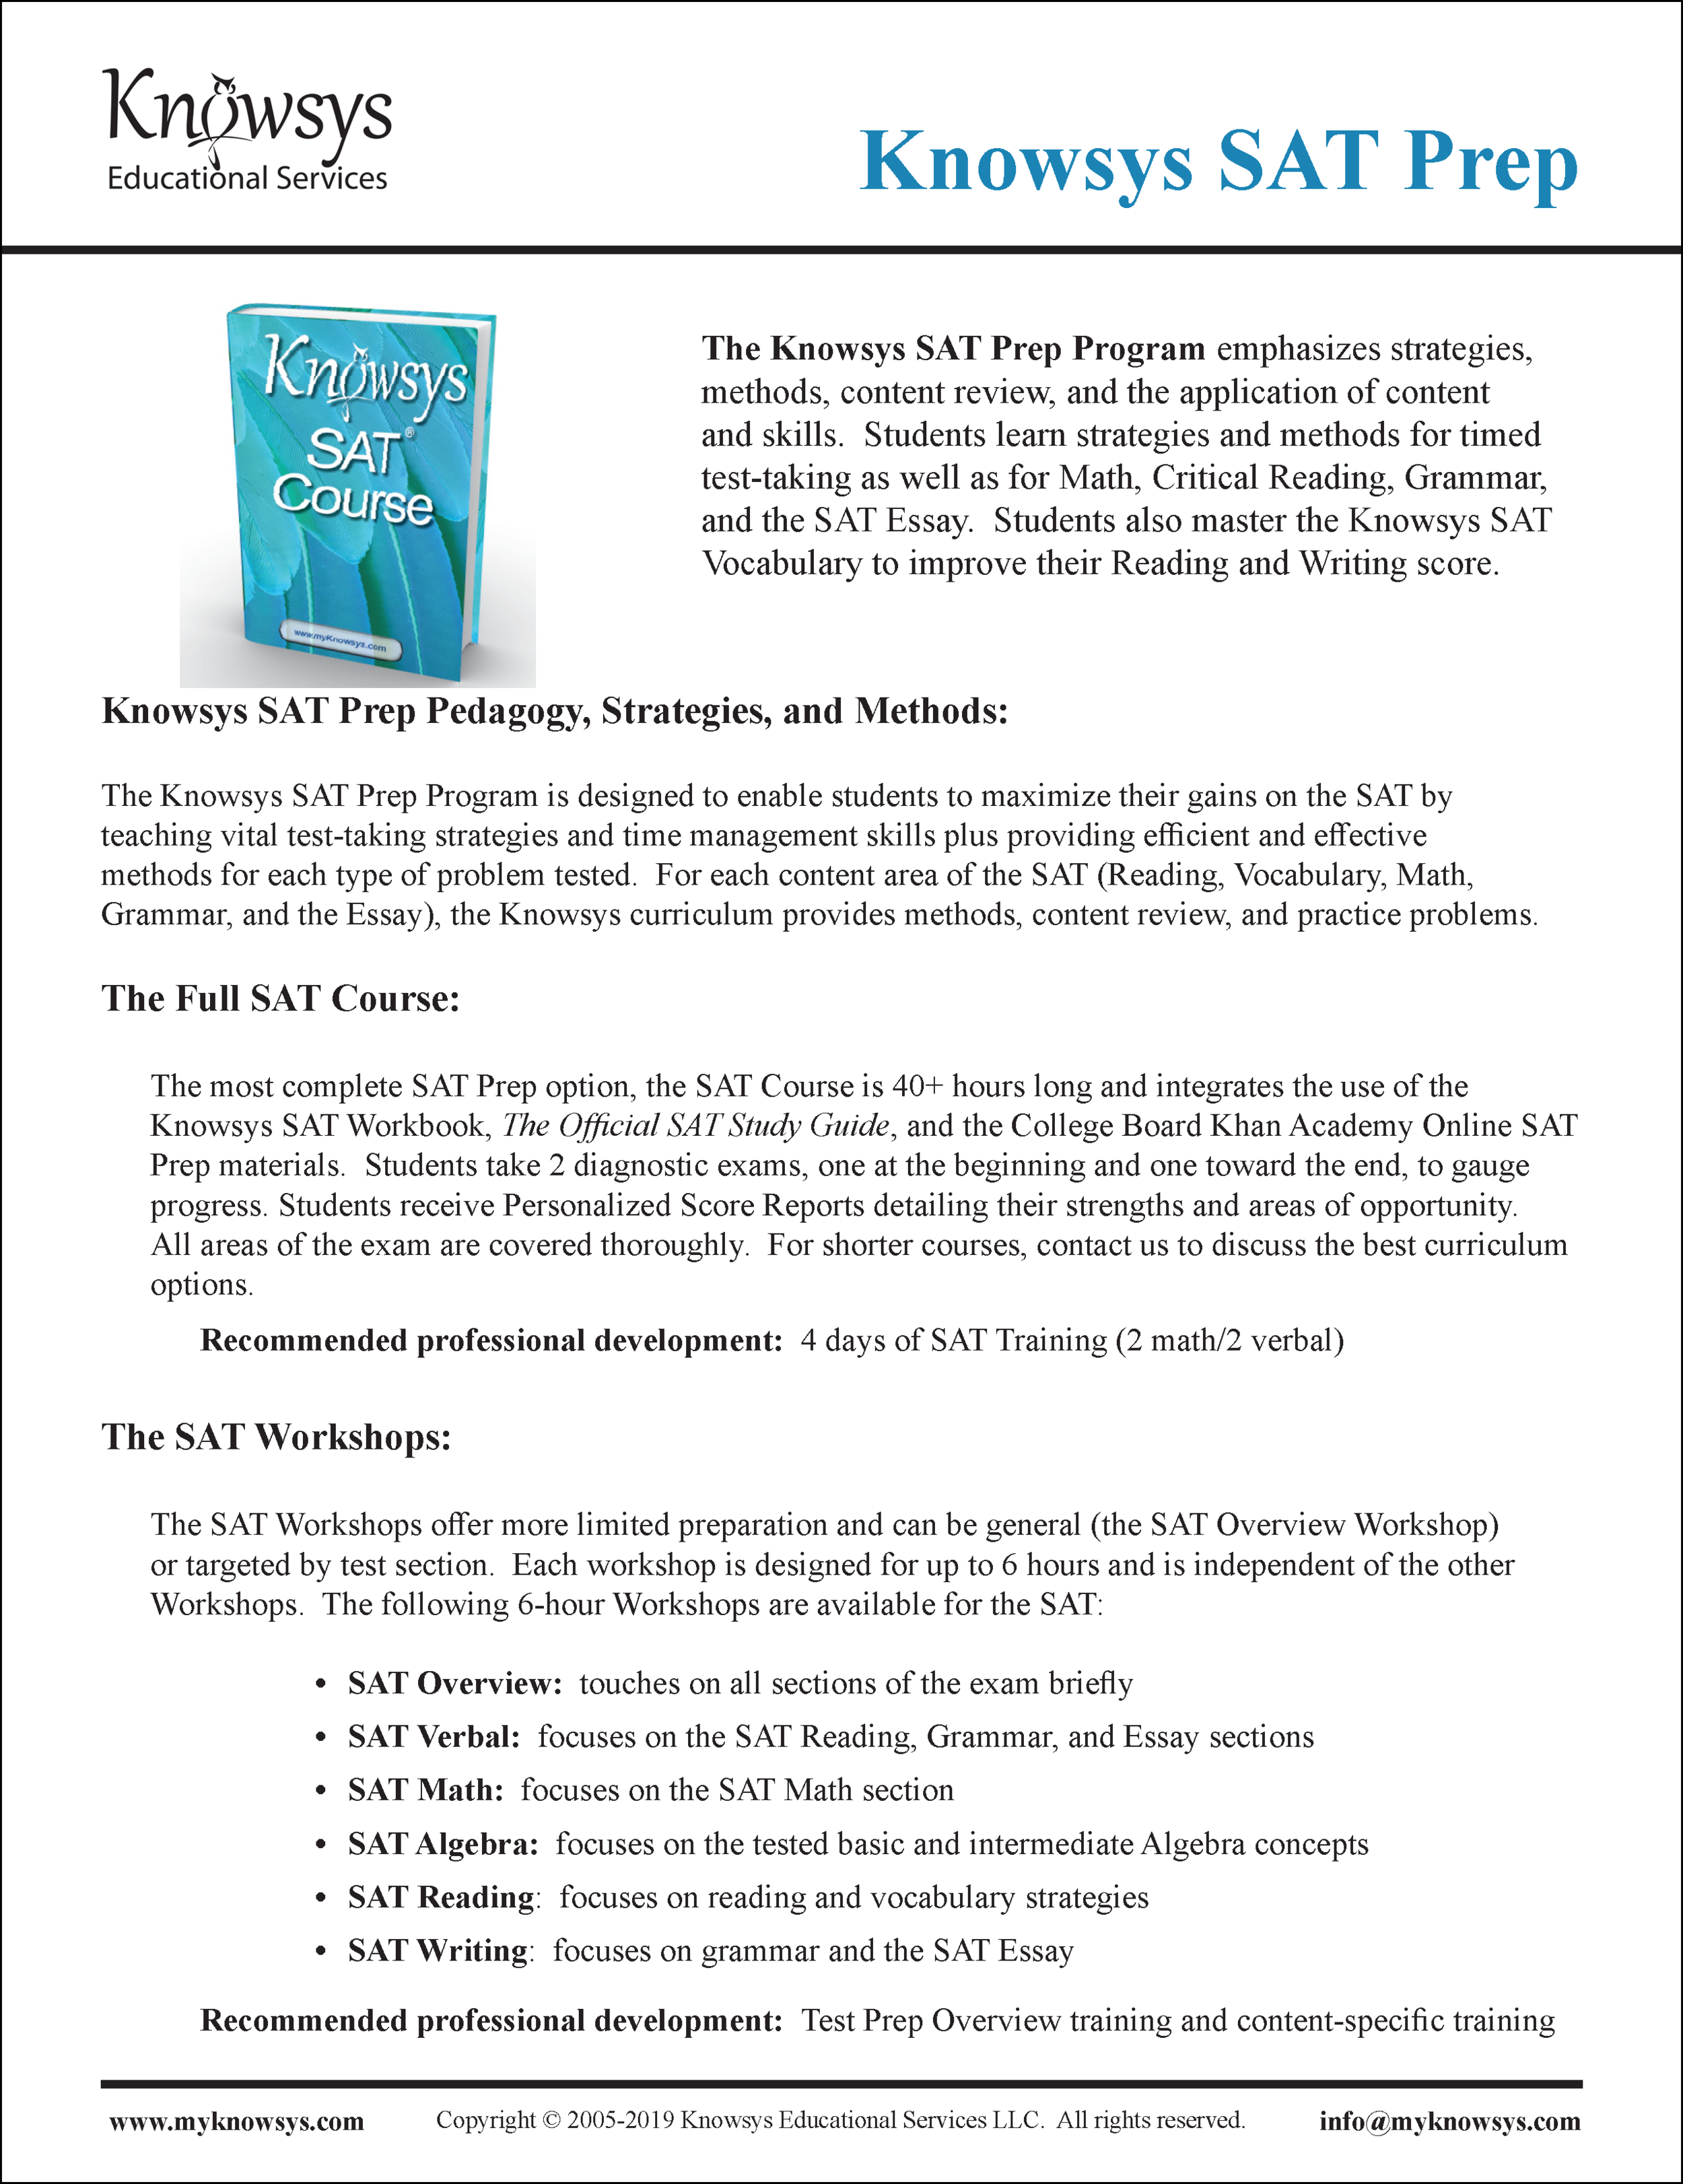 SAT — Knowsys Educational Services